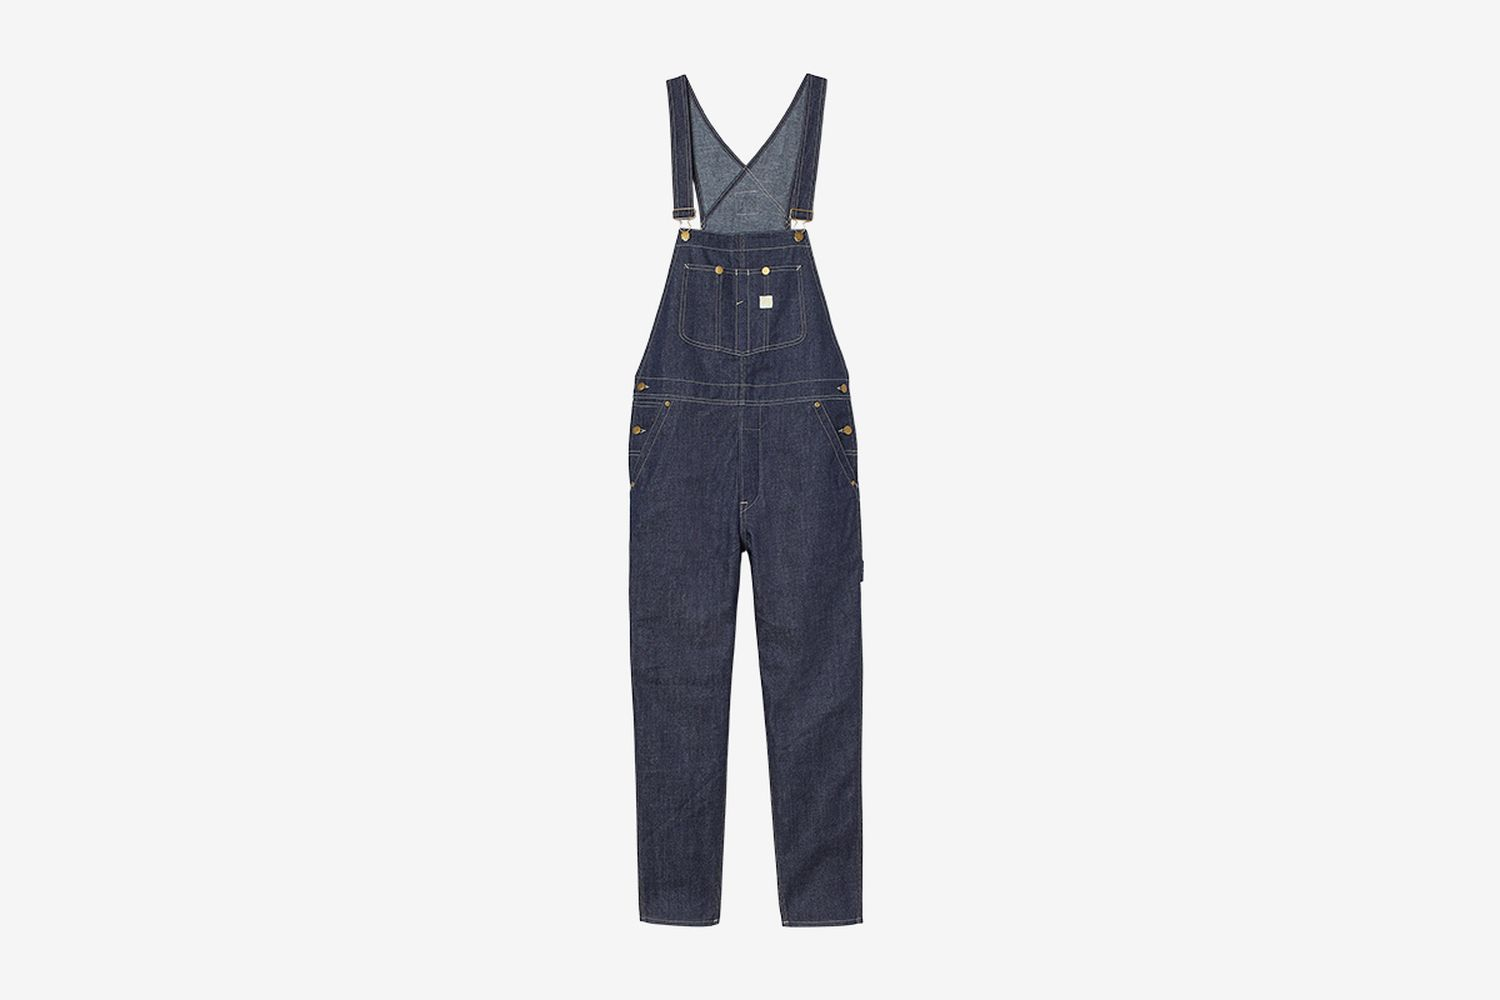 Lee x H&M Dungarees